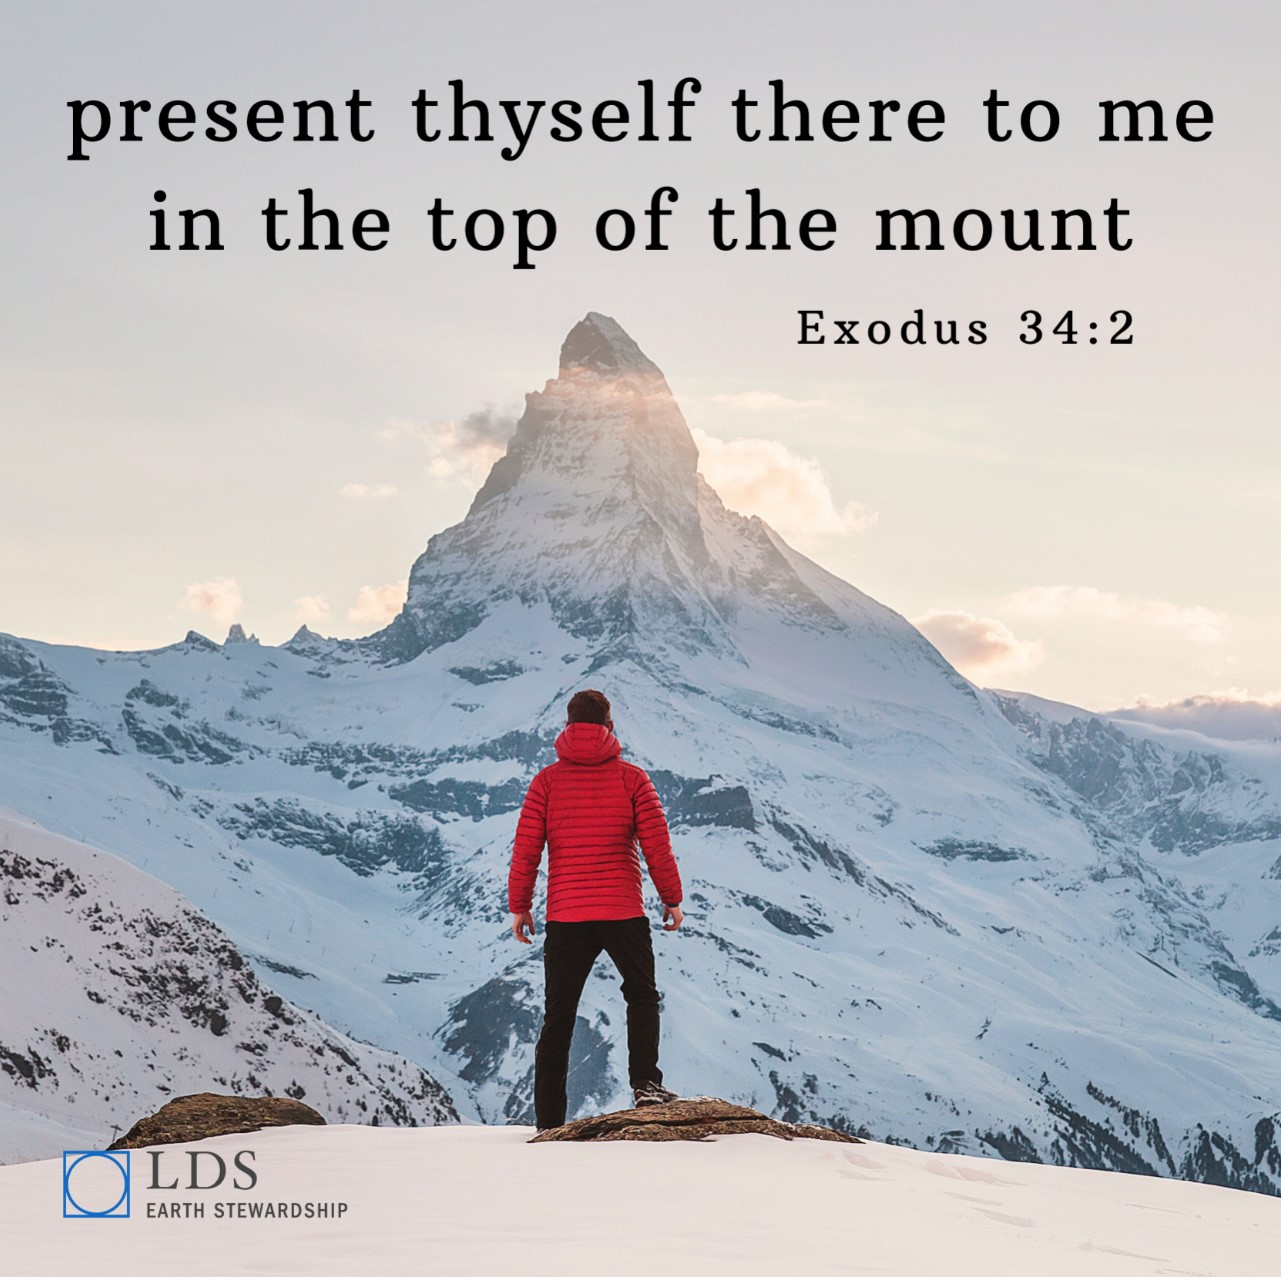 "LDS Earth Stewardship Quote Photo: ""present thyself there to me in the top of the mount"" Exodus 34:2 (Photo by Joshua Earle on Unsplash; man in red coat stands in front of snowy mountain peak)"